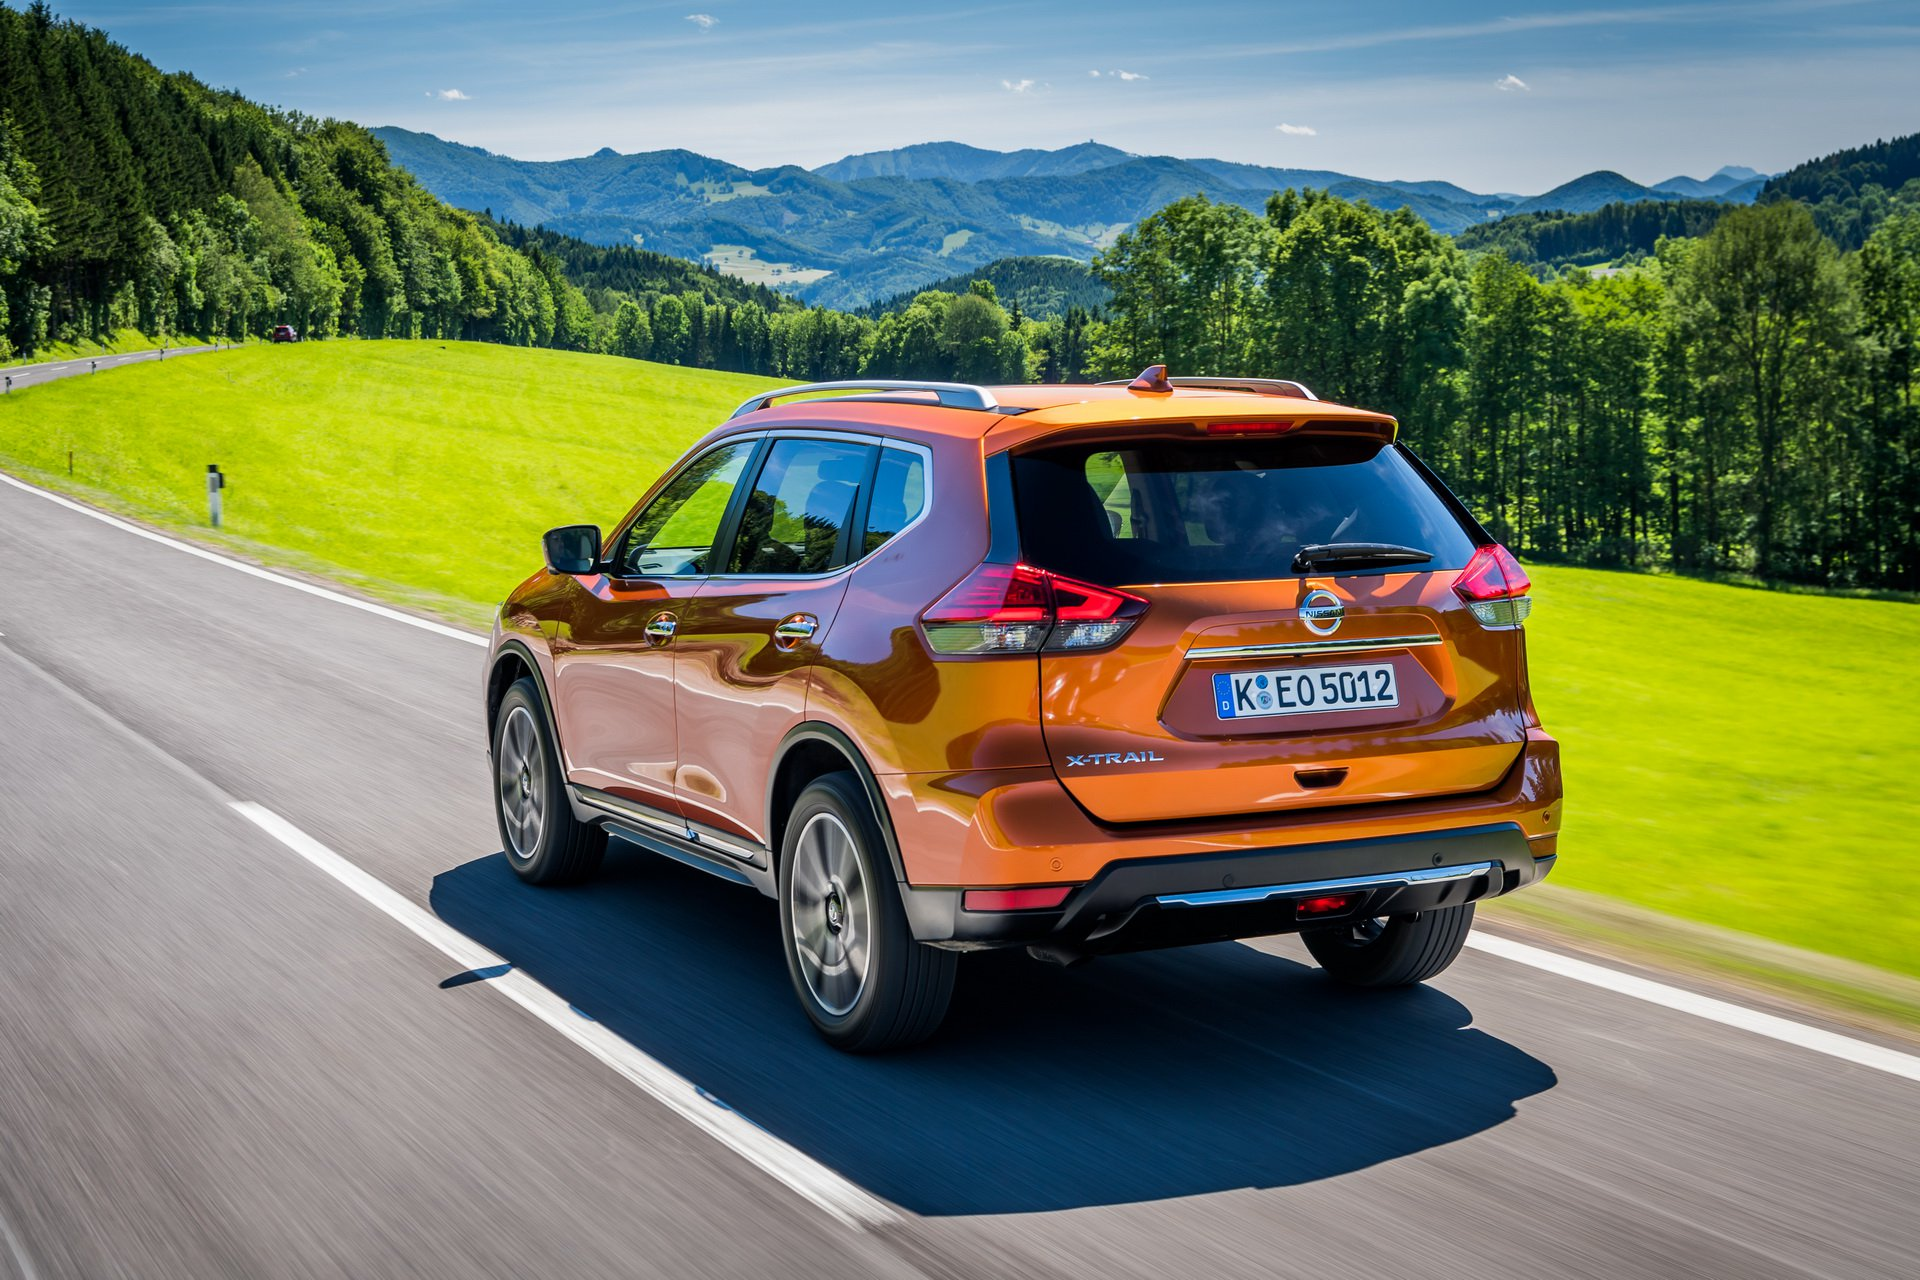 2019 nissan x trail gets 1 7 liter diesel with 150 hp 1 3. Black Bedroom Furniture Sets. Home Design Ideas